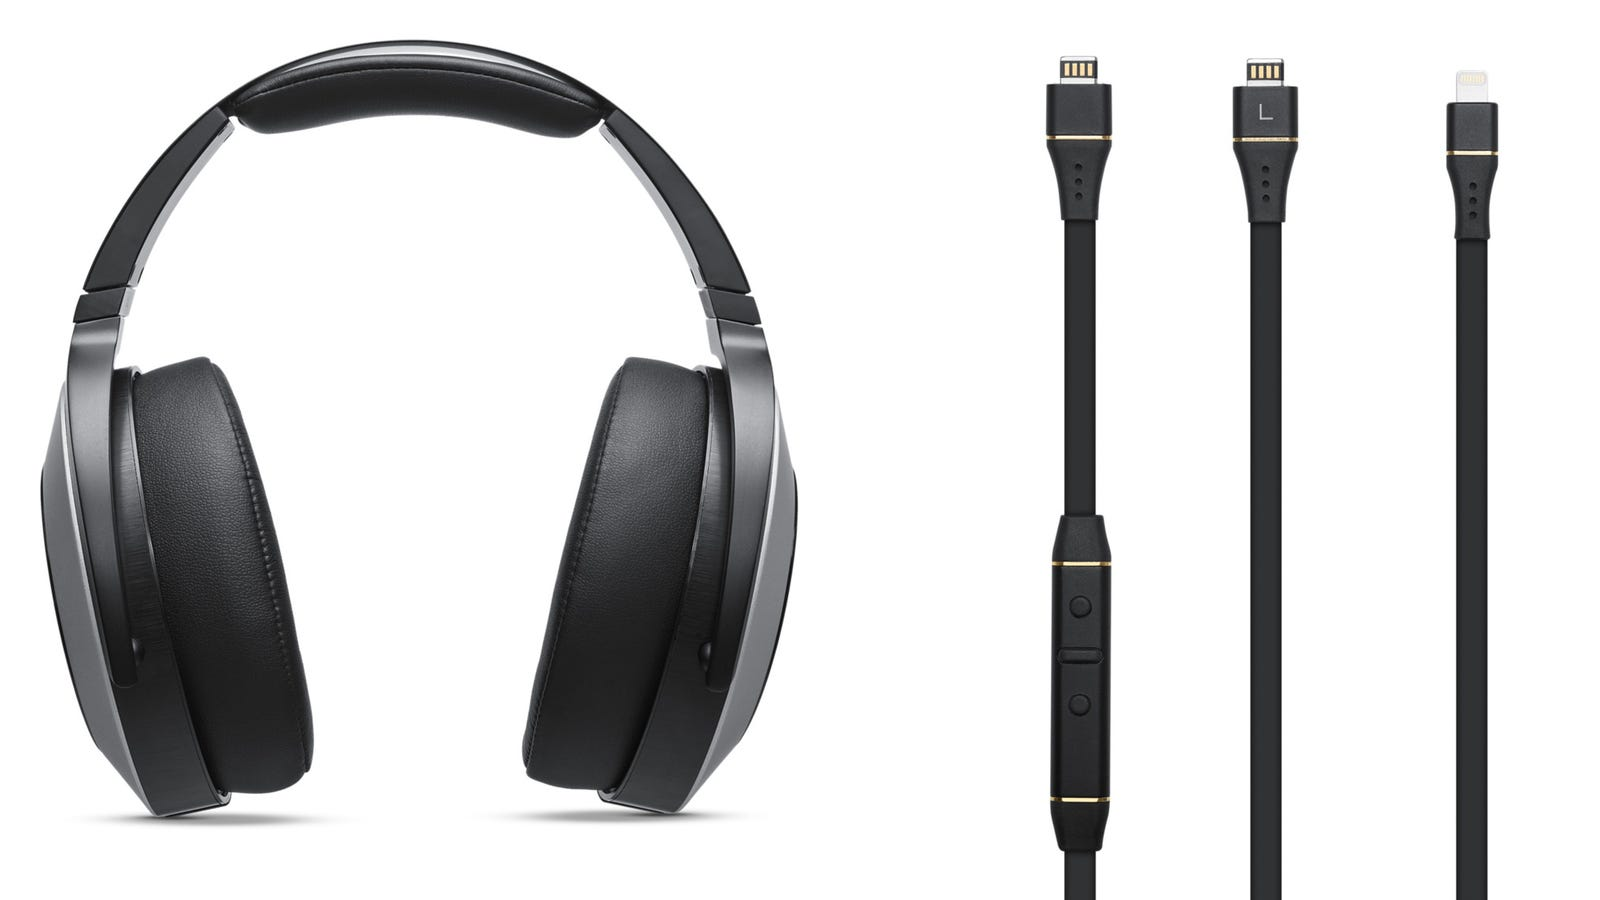 earbuds android phone - These $800 Lightning Headphones Make Your iPhone's 3.5mm Jack Redundant